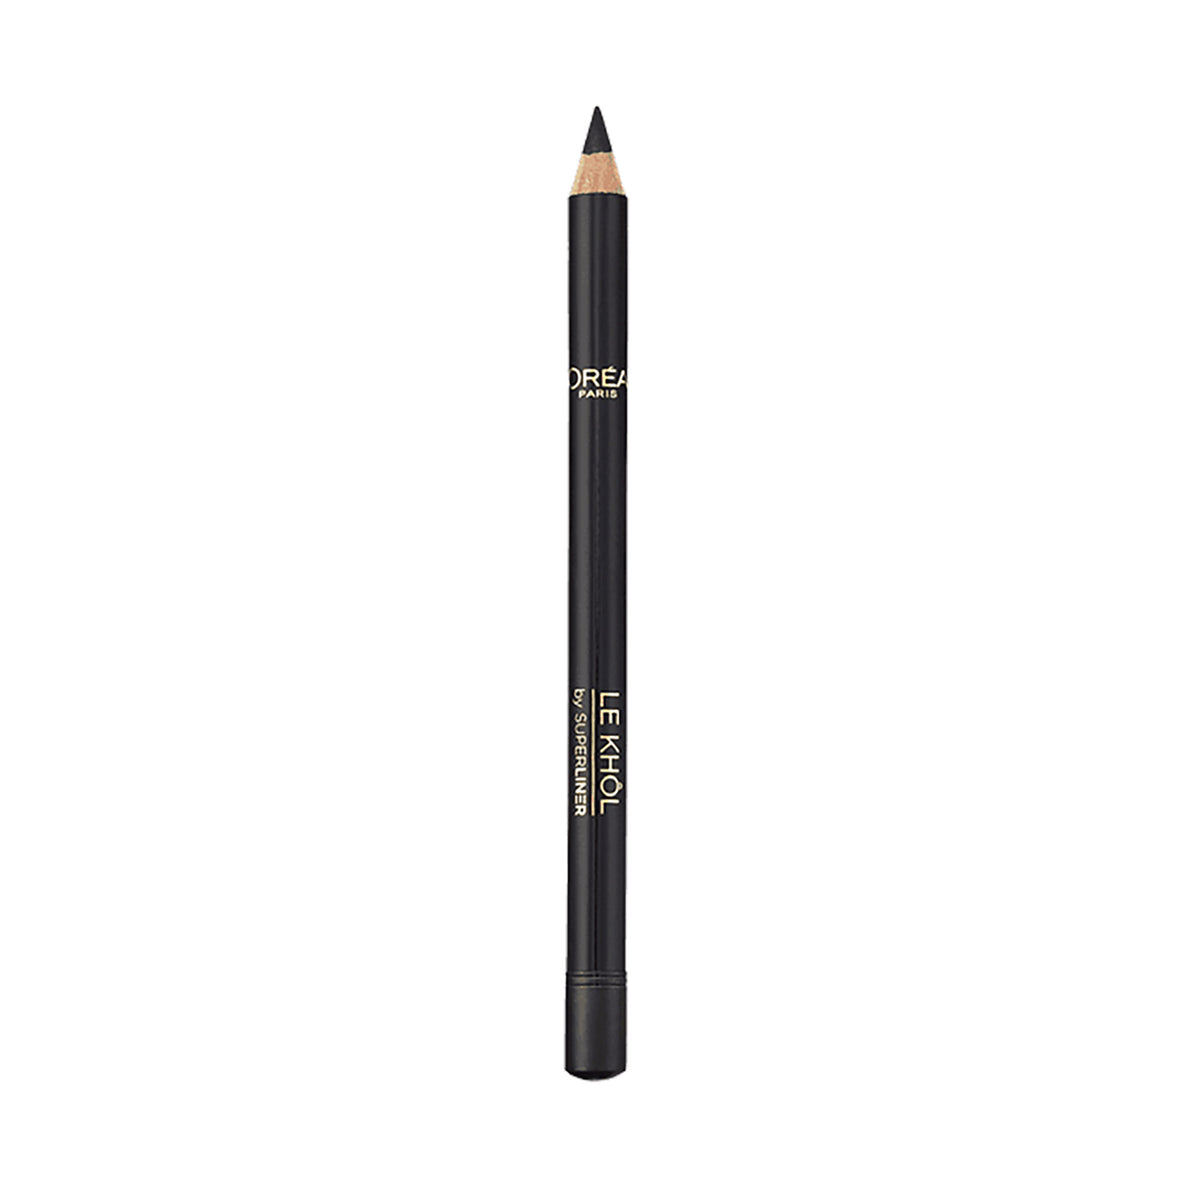 L'Oreal Paris Le Khol Eyeliner Pencil (Midnight Black)